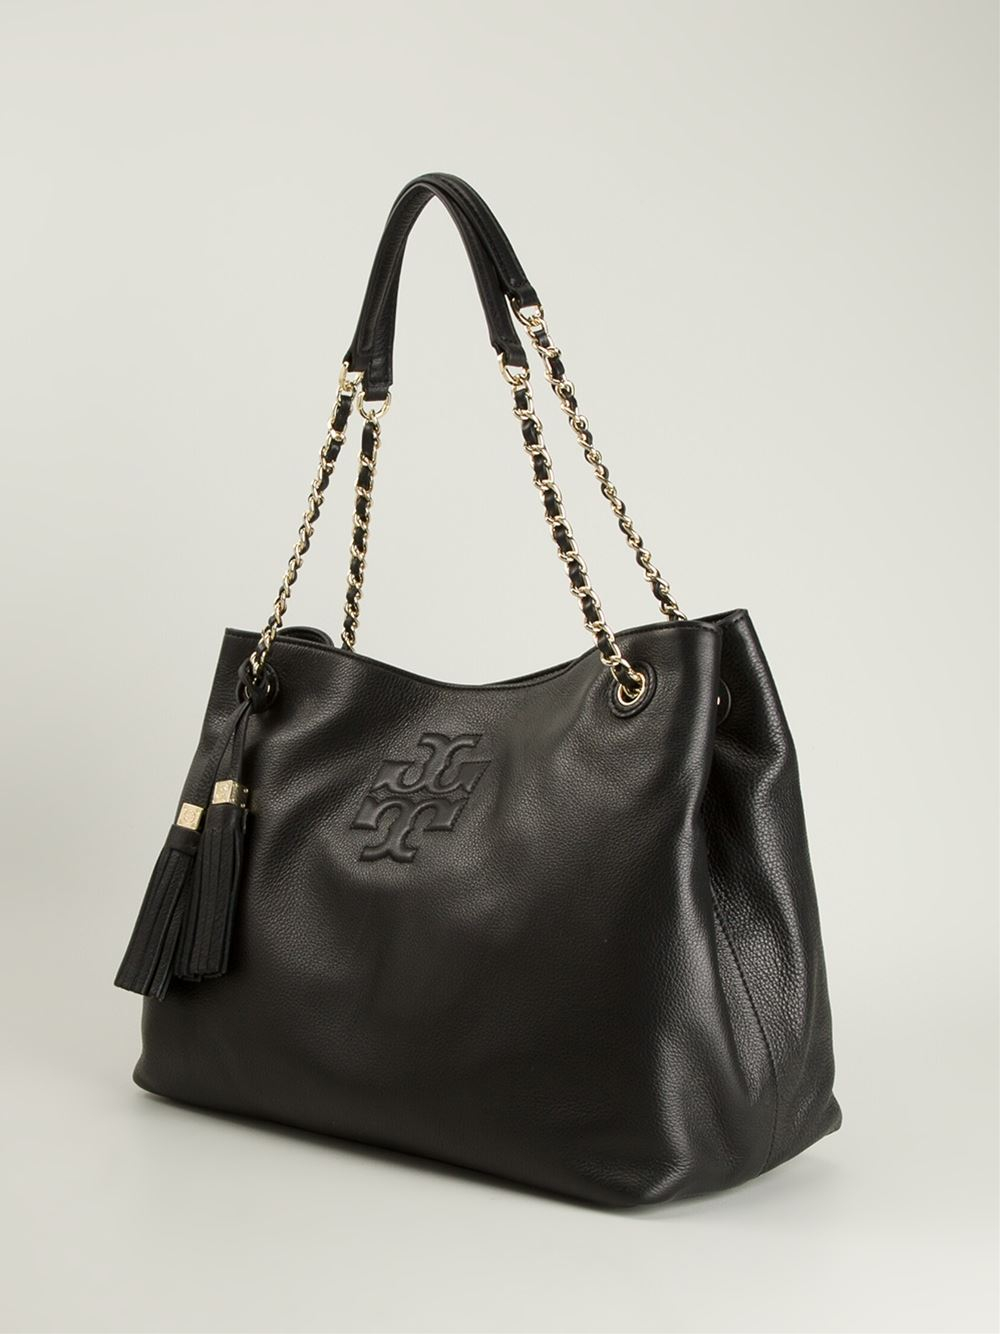 84d31747ade0 Lyst - Tory Burch Thea Chain Strap Tote in Black